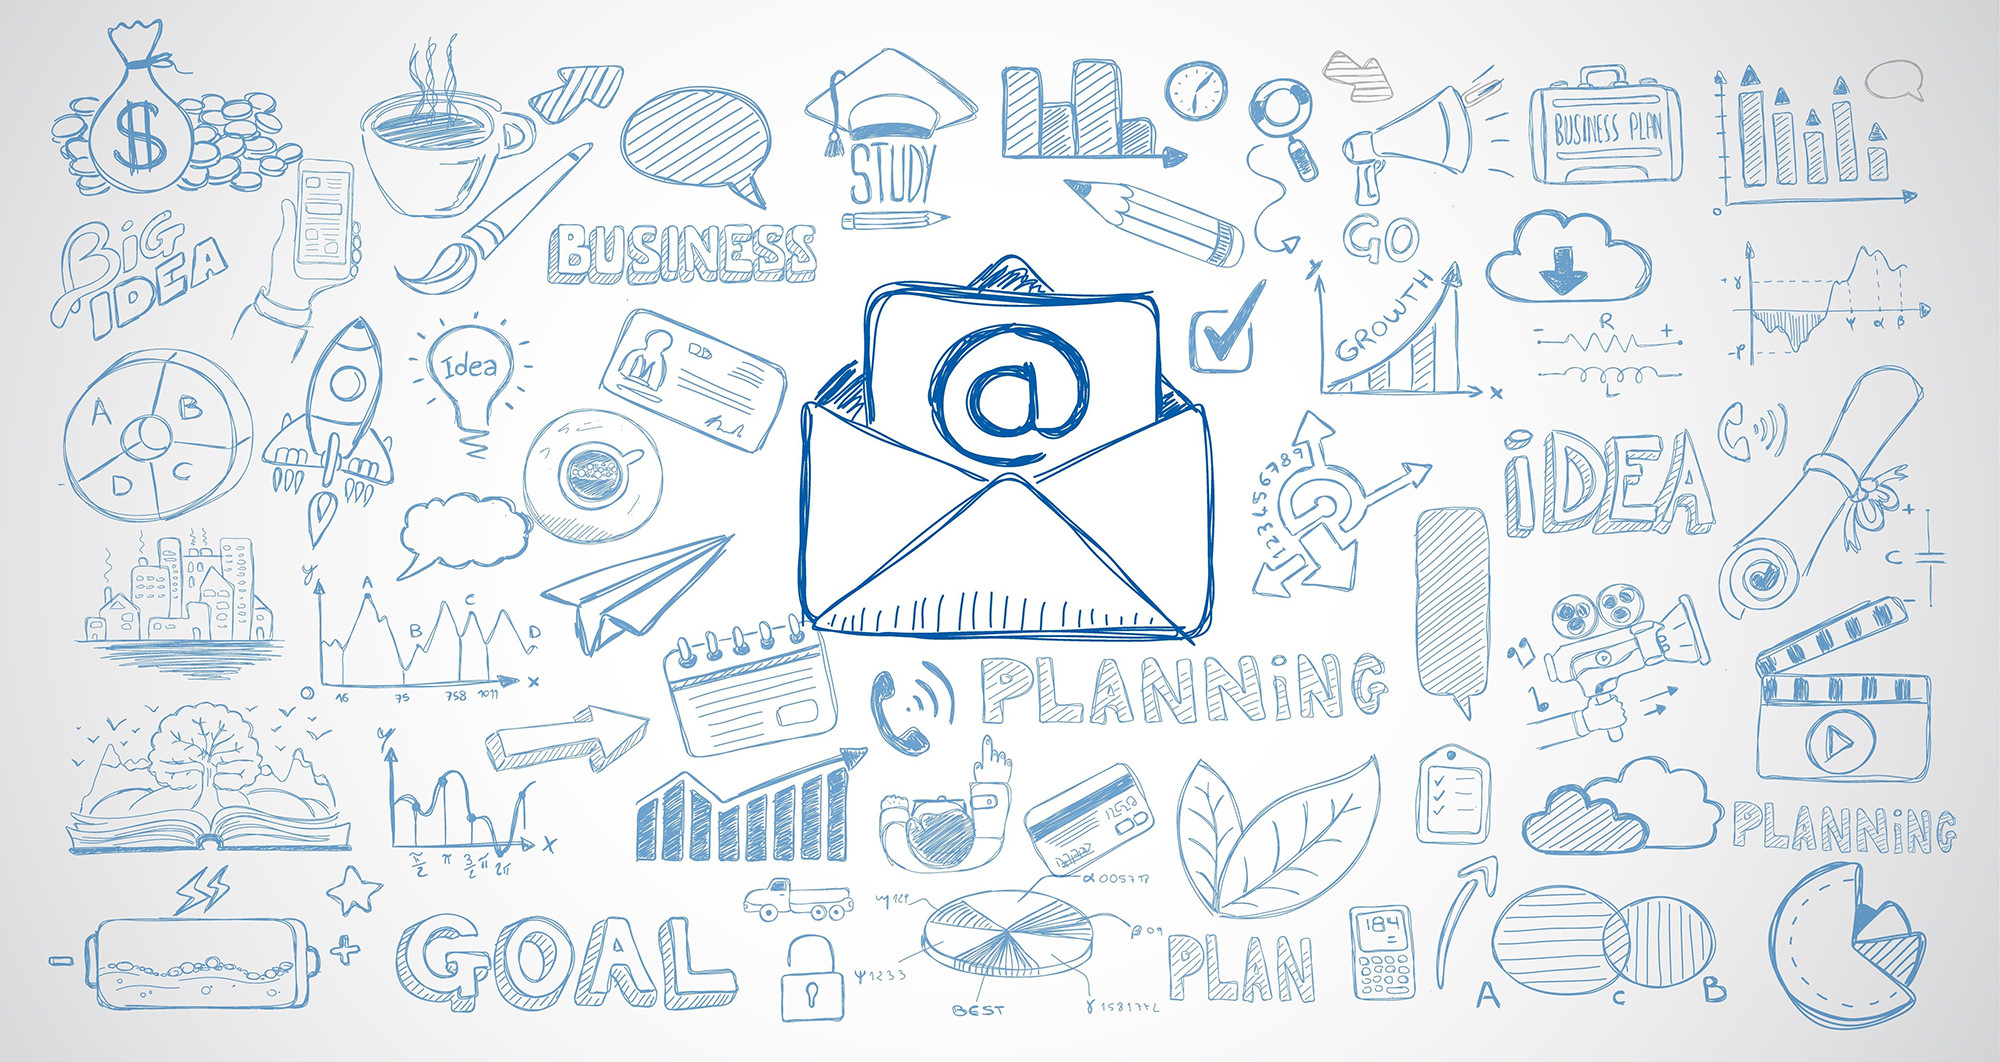 Email Marketing: A love/hate relationship